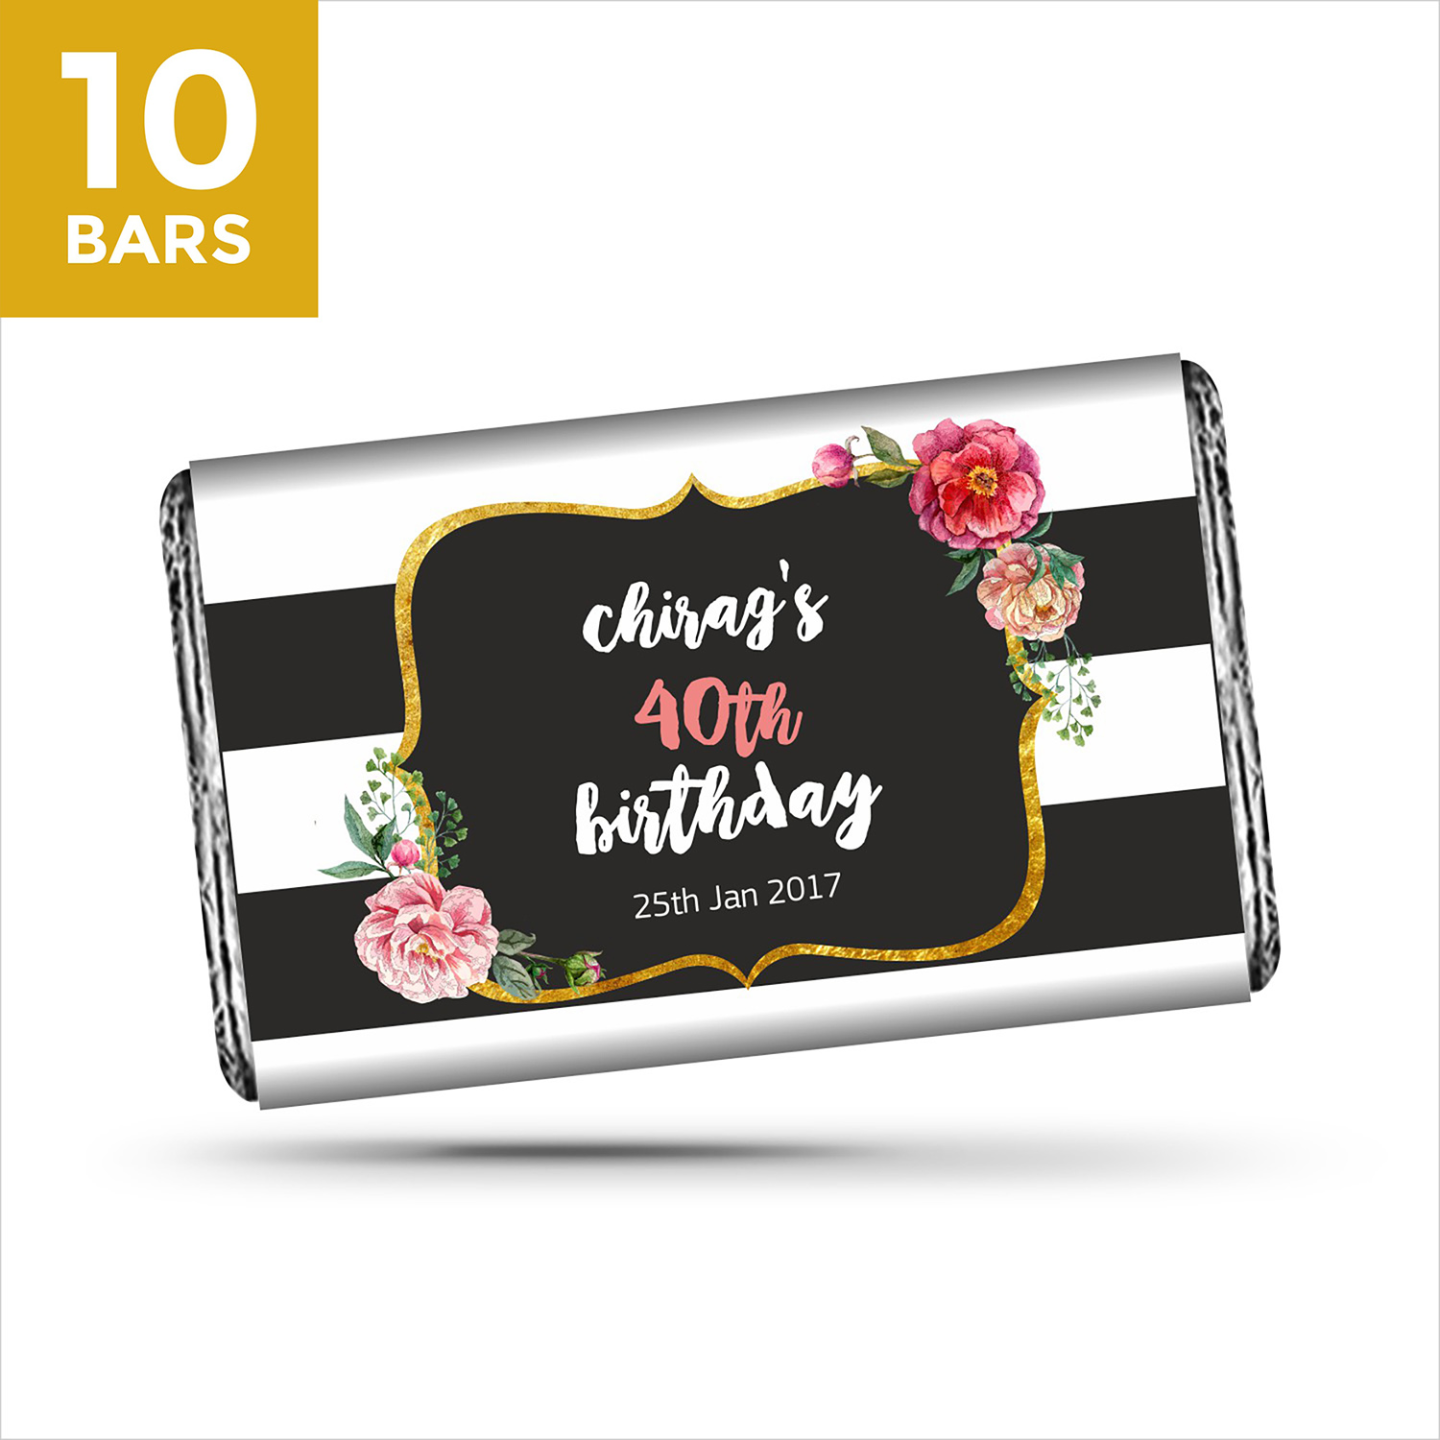 Birthday Return Gifts, Personalize Chocolates -10 Bars